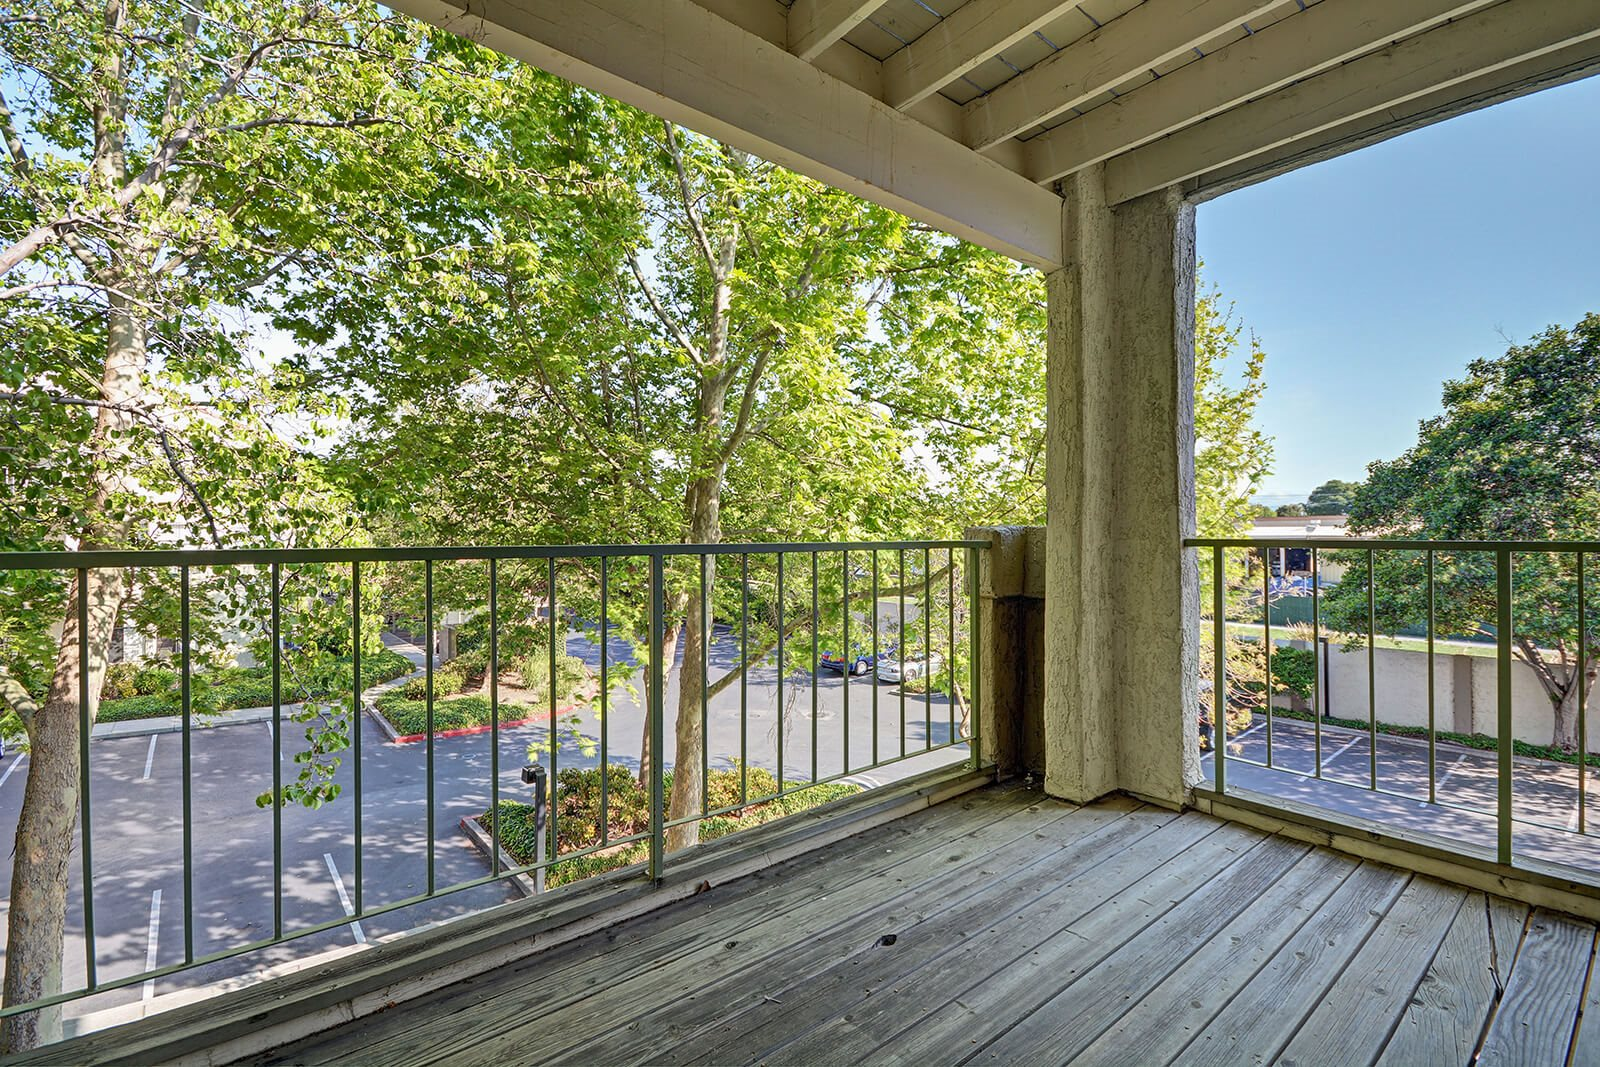 Private Patios Available at Mission Pointe by Windsor, Sunnyvale, California